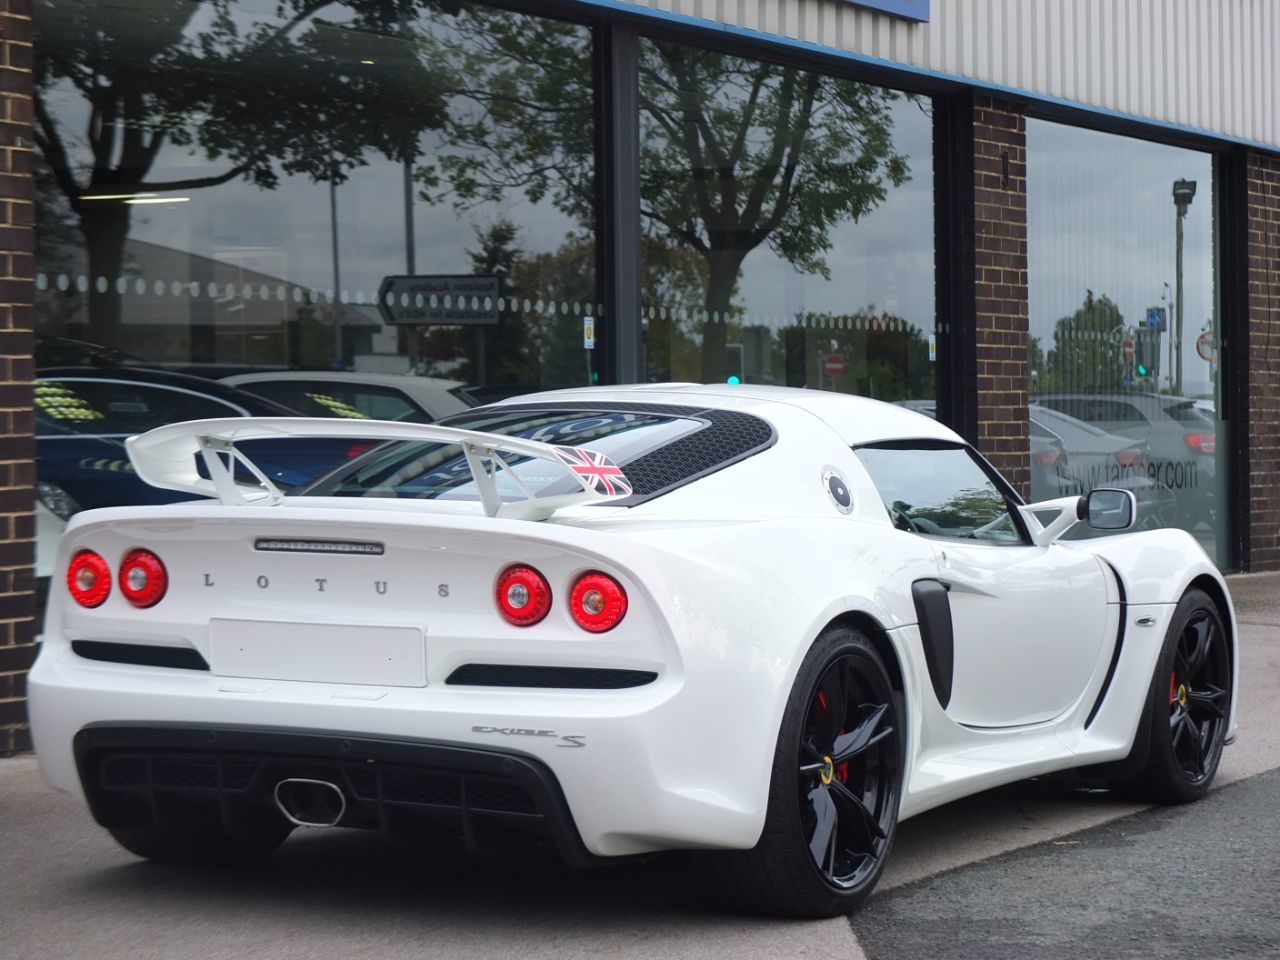 Lotus Exige 3.5 EXIGE S Premium Sport and Race Packs 350ps Coupe Petrol Aspen White